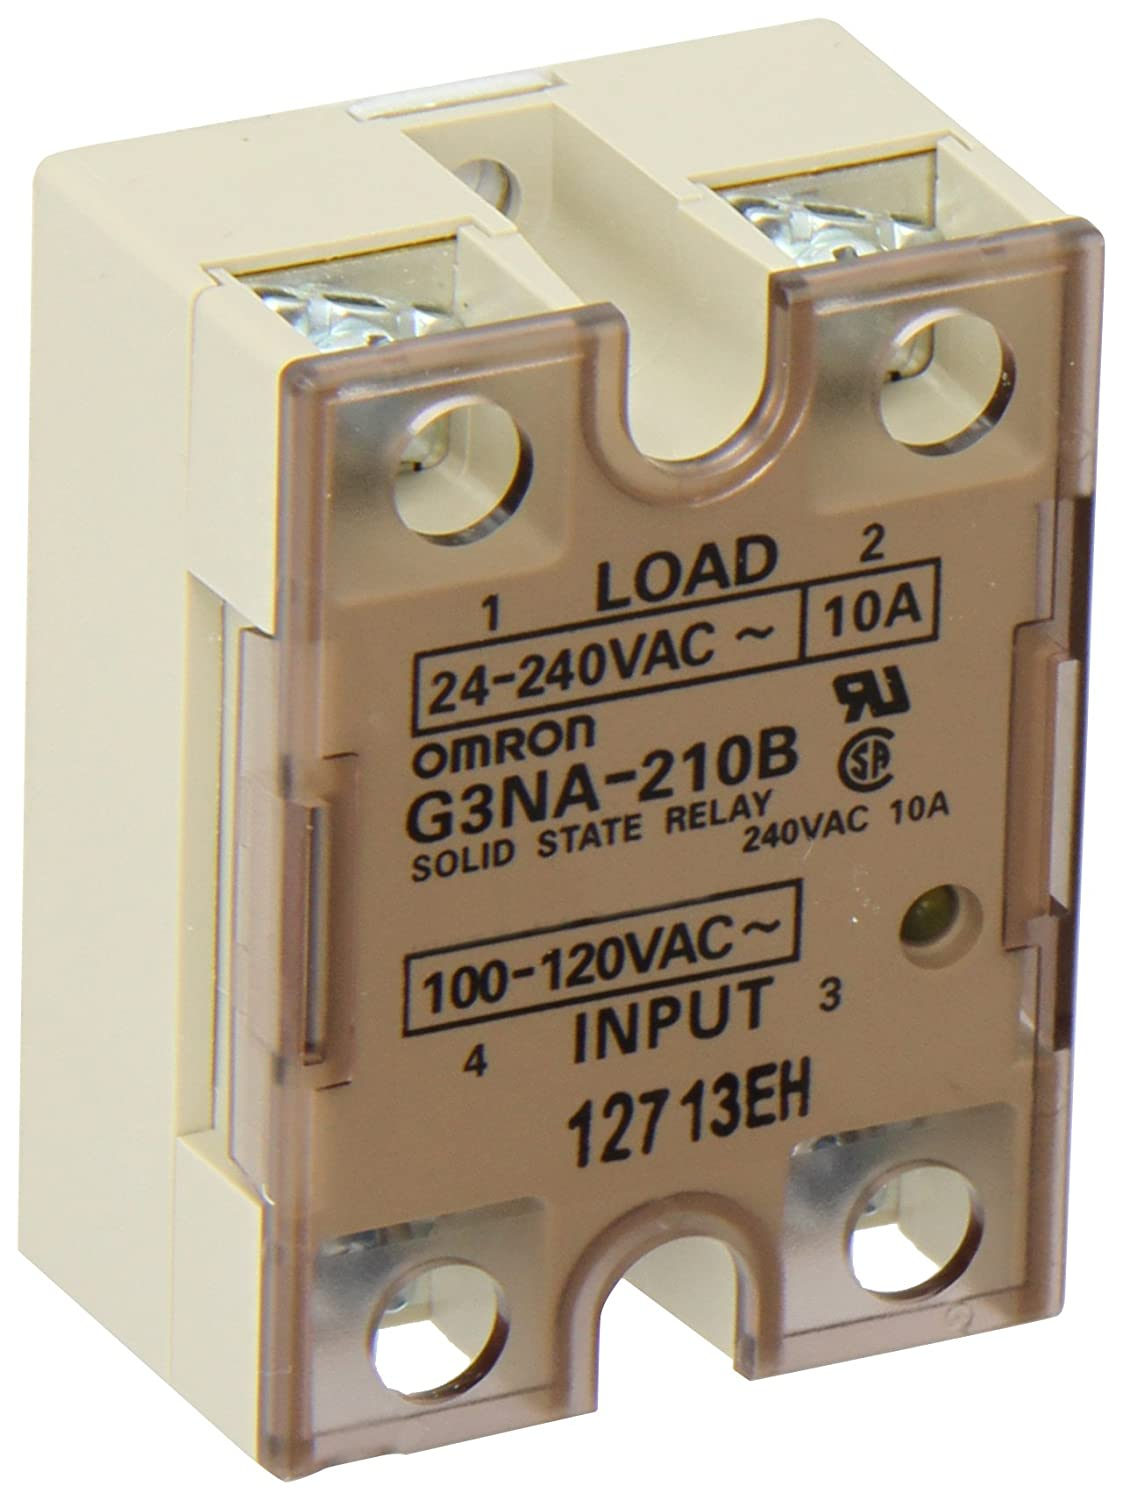 Omron G3NA-210B-AC100-120 Solid State Relay, Zero Cross Function, Yellow  Indicator, Photocoupler Isolation, 10 A Rated Load Current, 24 to 240 VAC